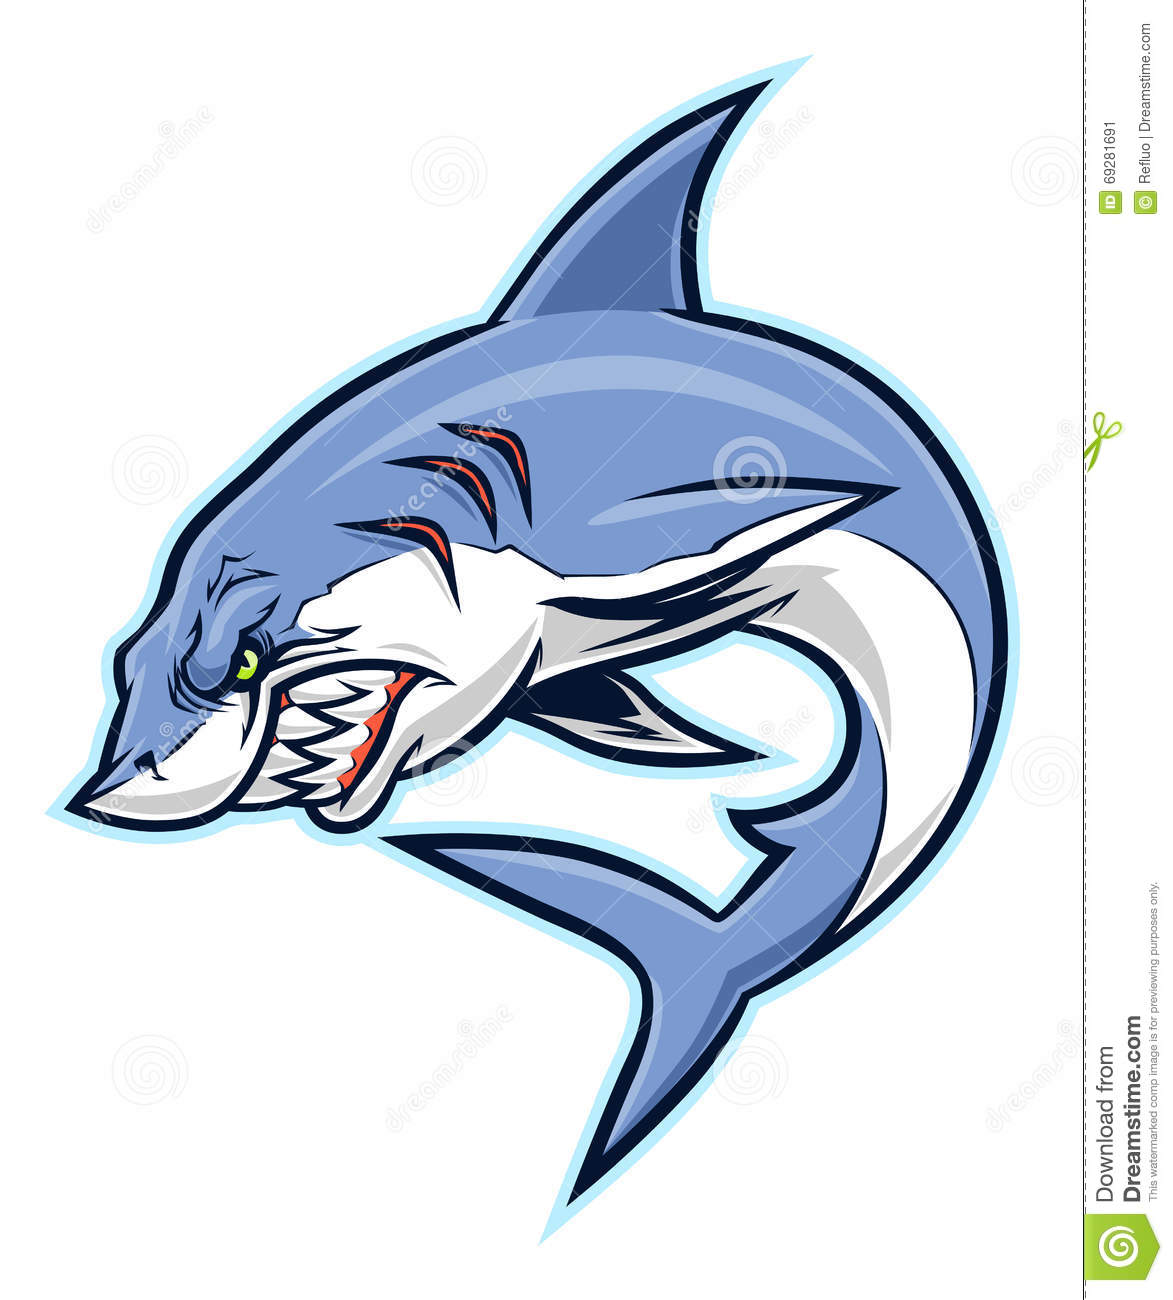 Angry shark clipart - photo#2